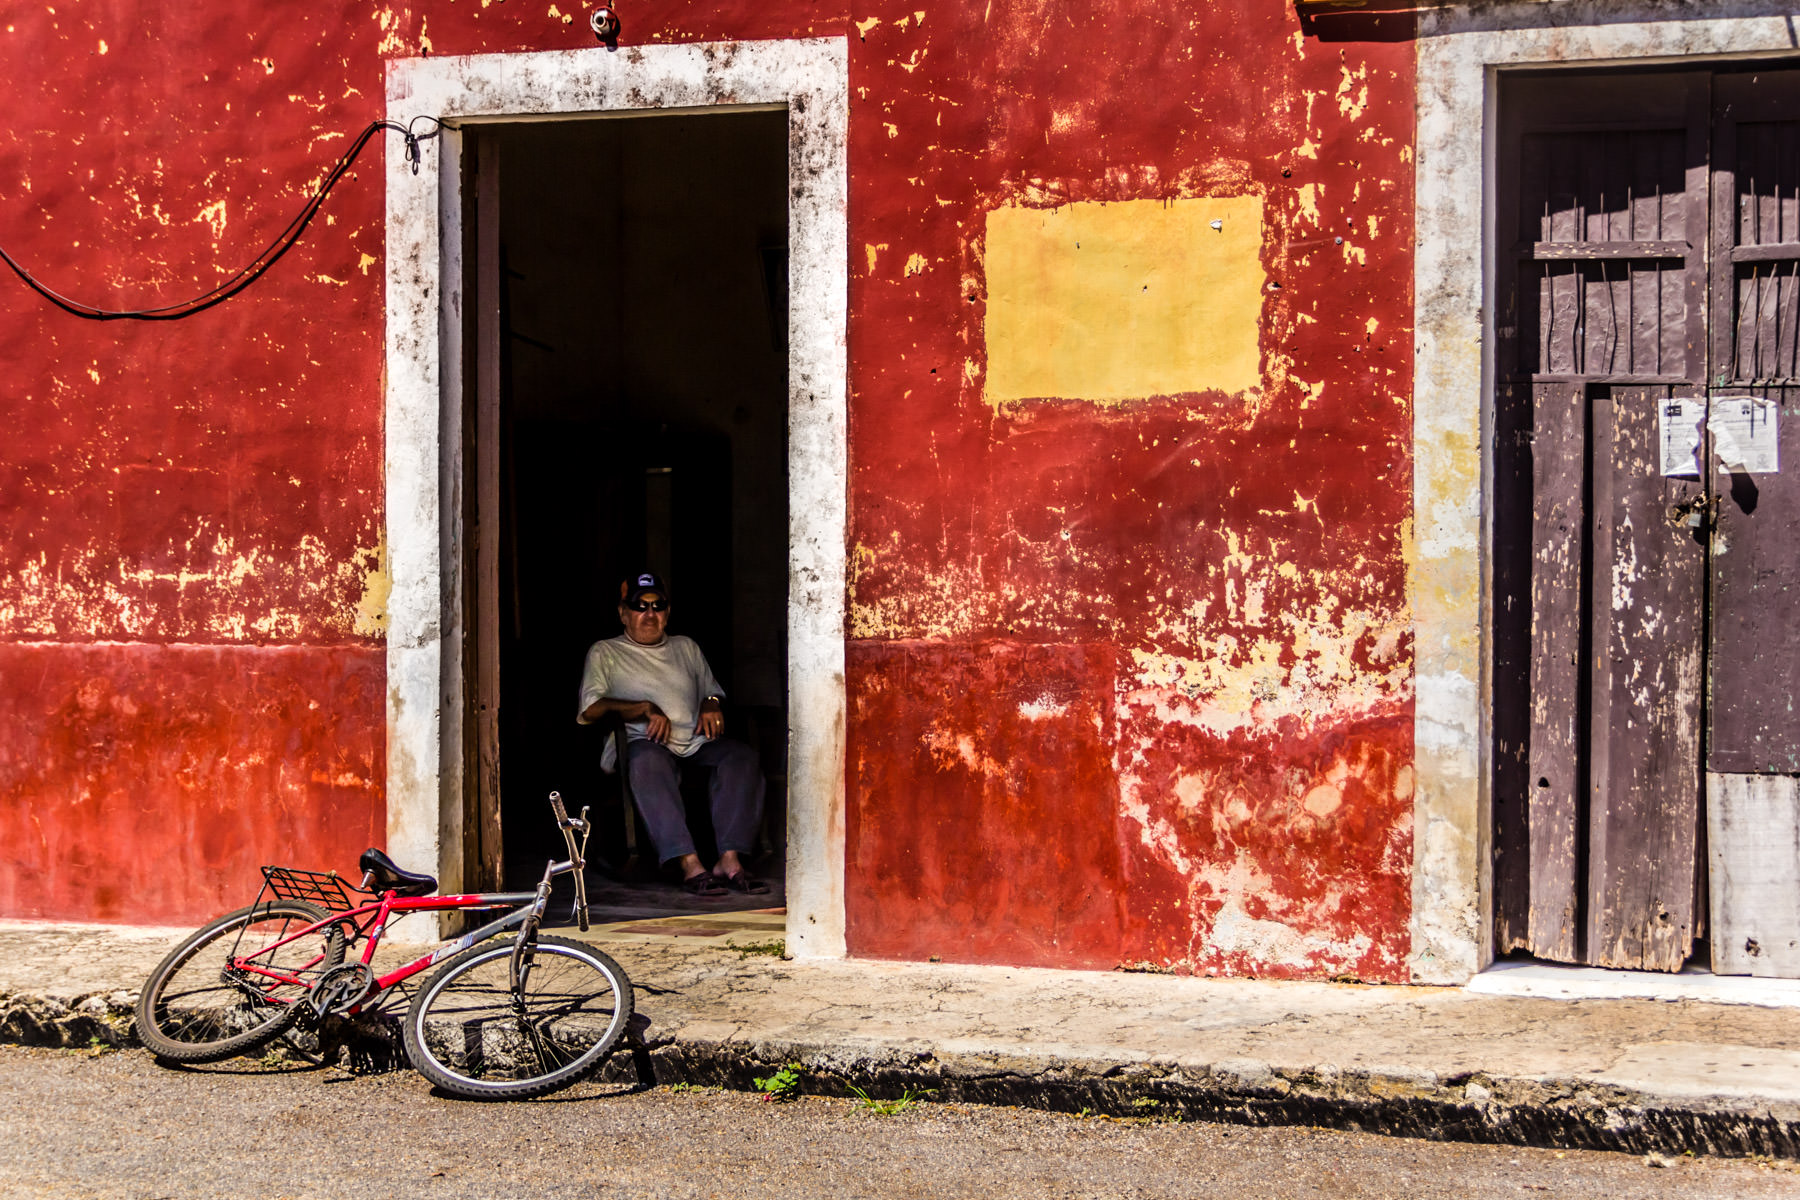 An older gentleman seeks relief from the relentless sun in the tiny Yucatan town of Dzemul, Mexico.